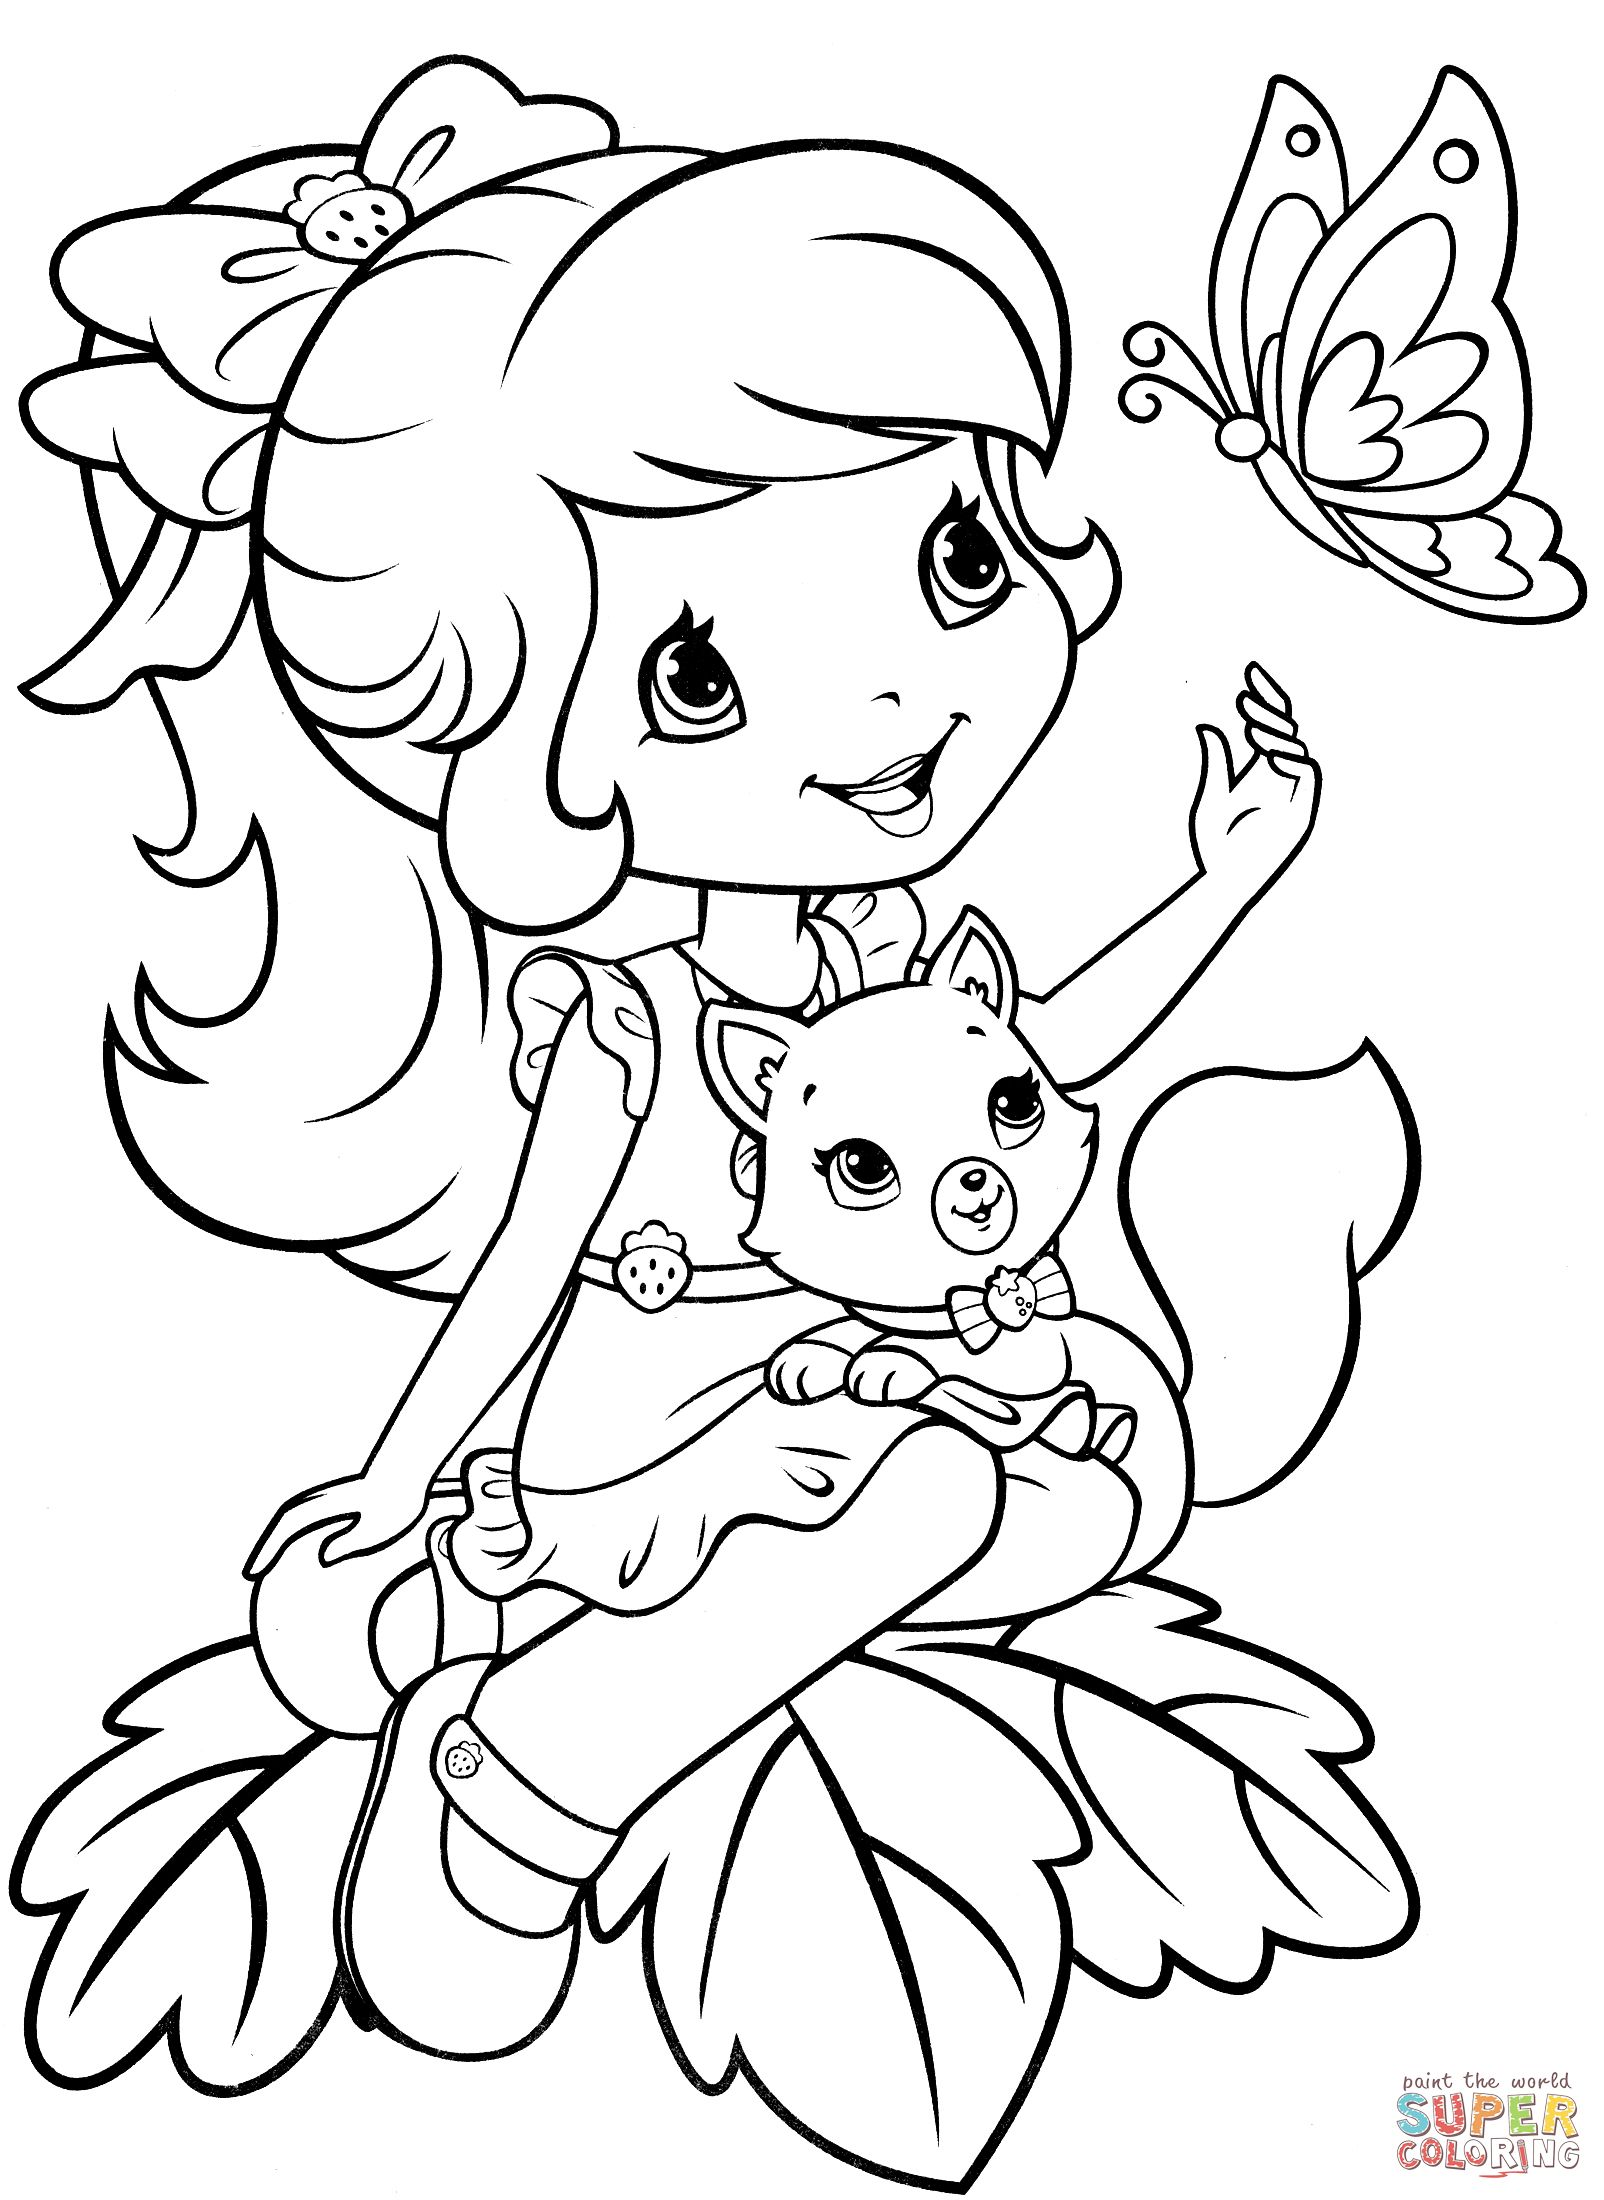 21 Pretty Photo Of Strawberry Shortcake Coloring Pages Entitlementtrap Com Cartoon Coloring Pages Butterfly Coloring Page Strawberry Shortcake Coloring Pages